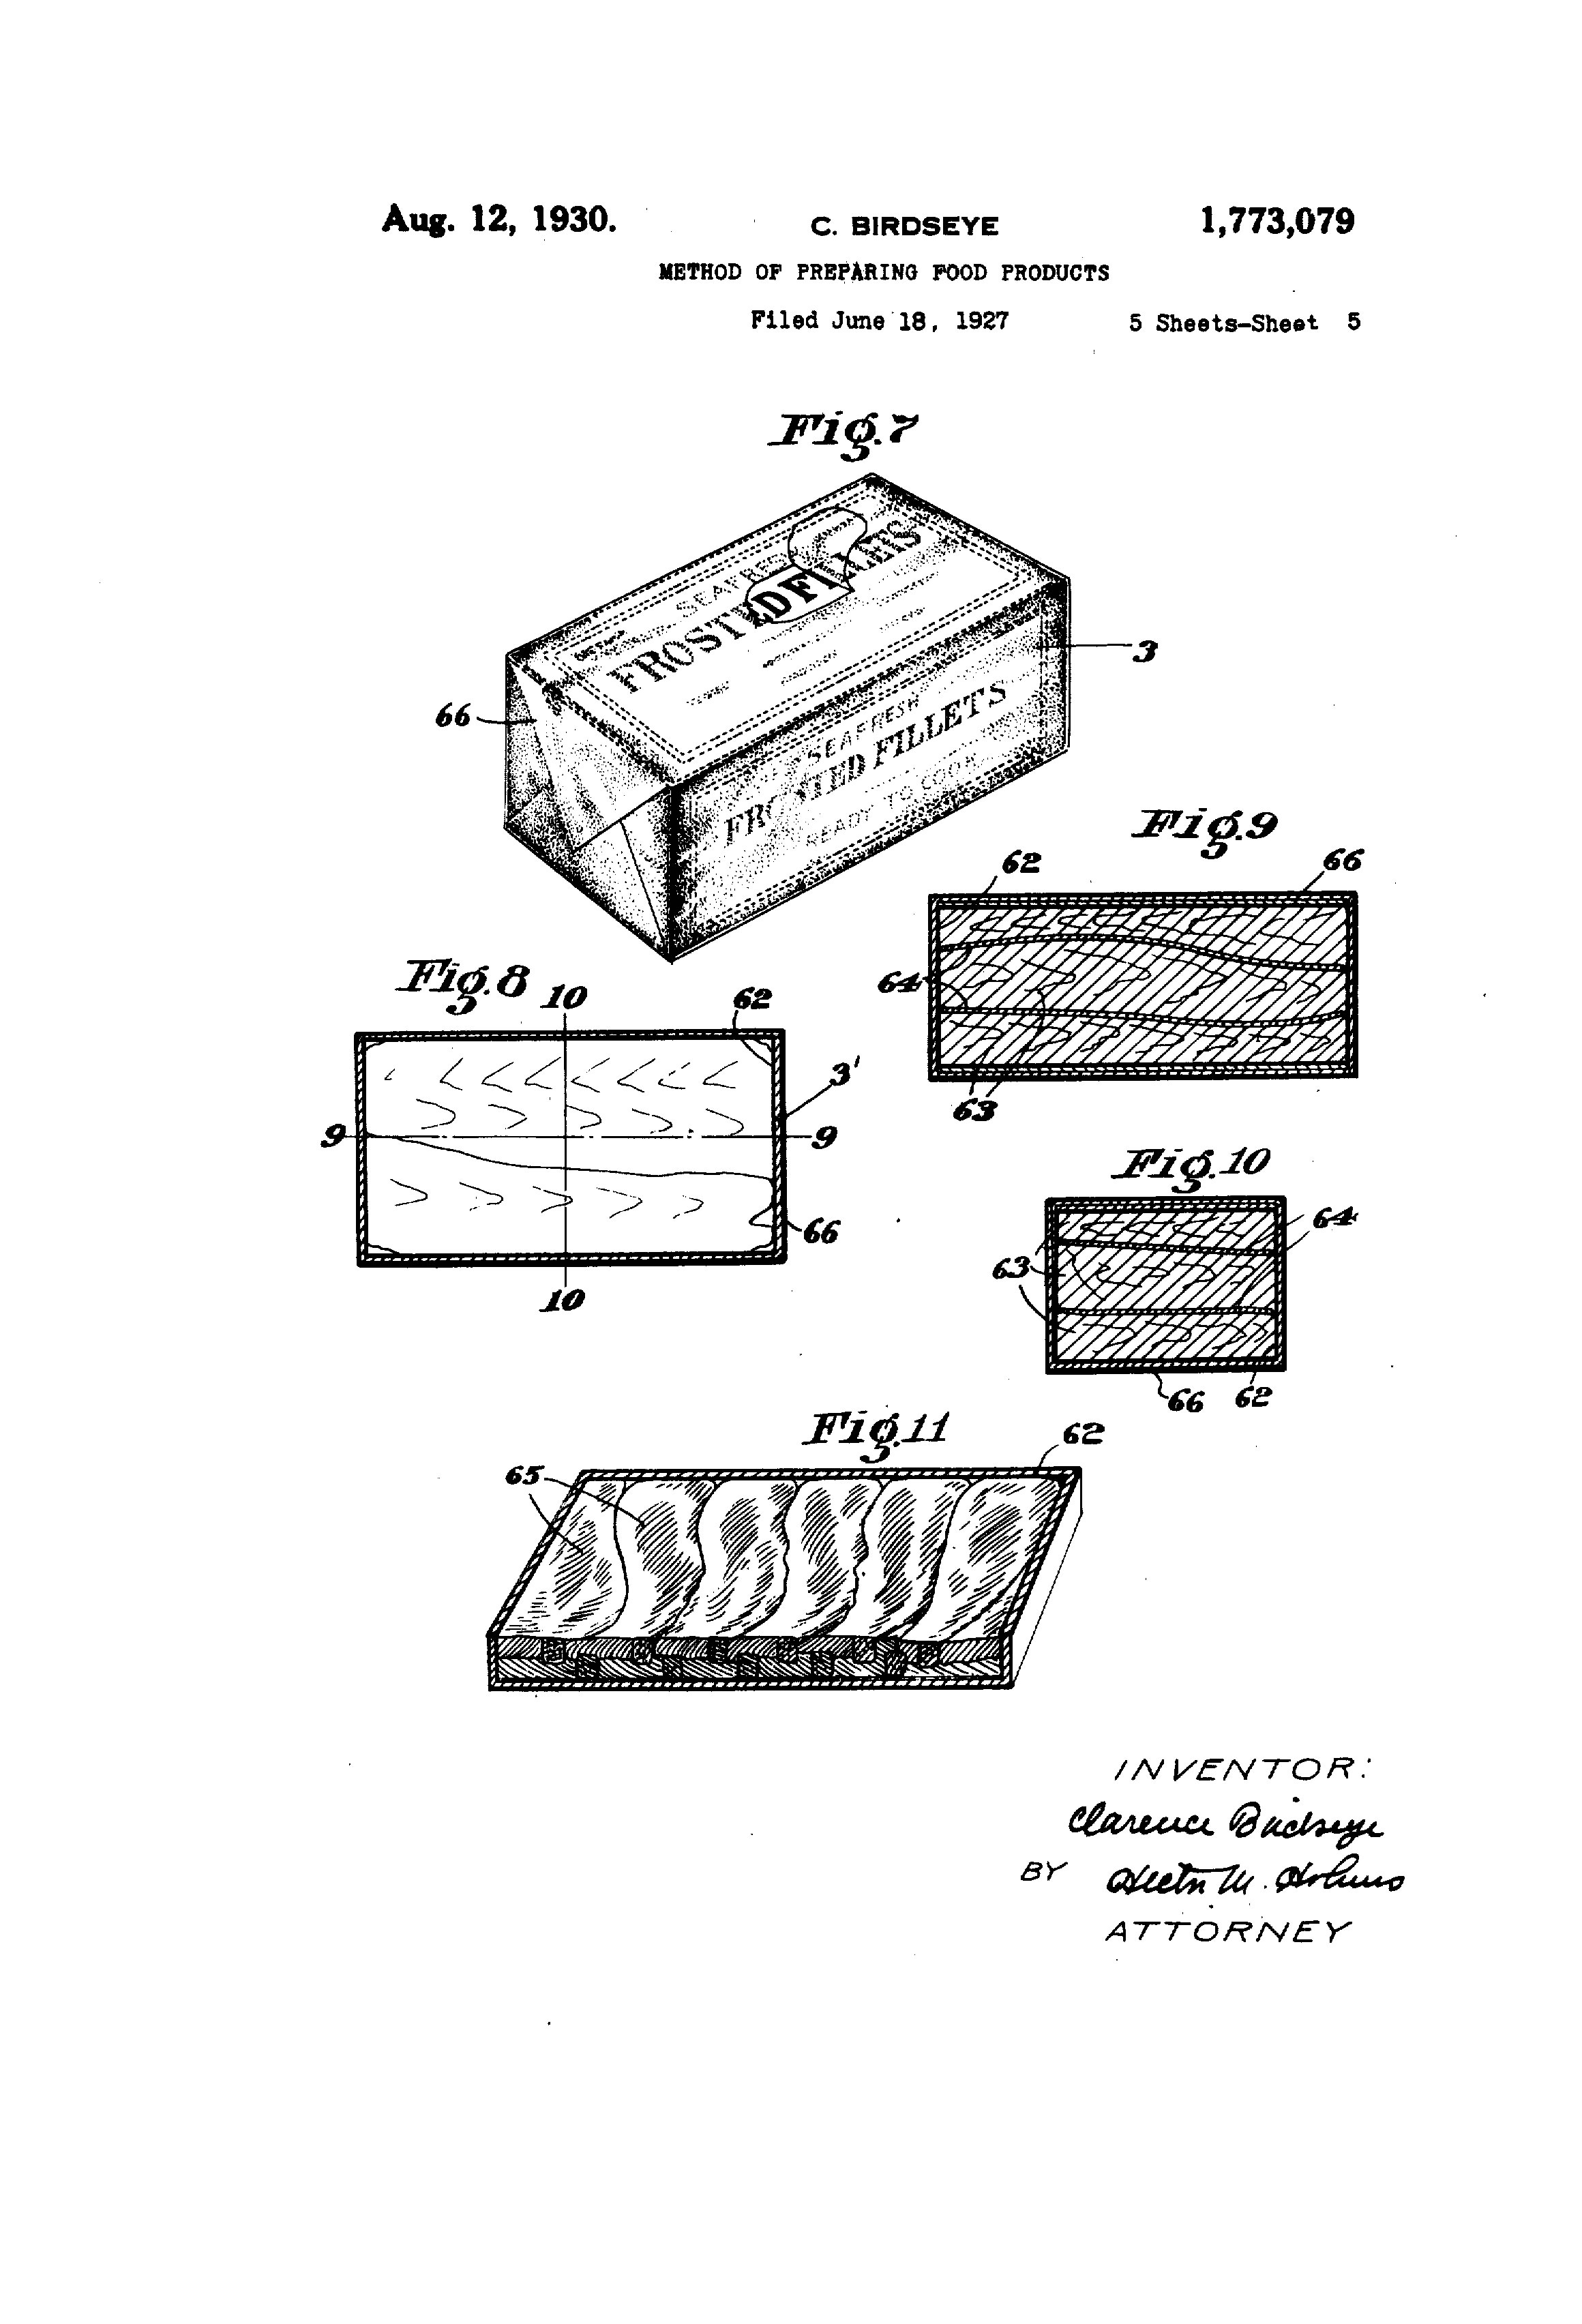 Clarence Birdseye's patent for freezing food